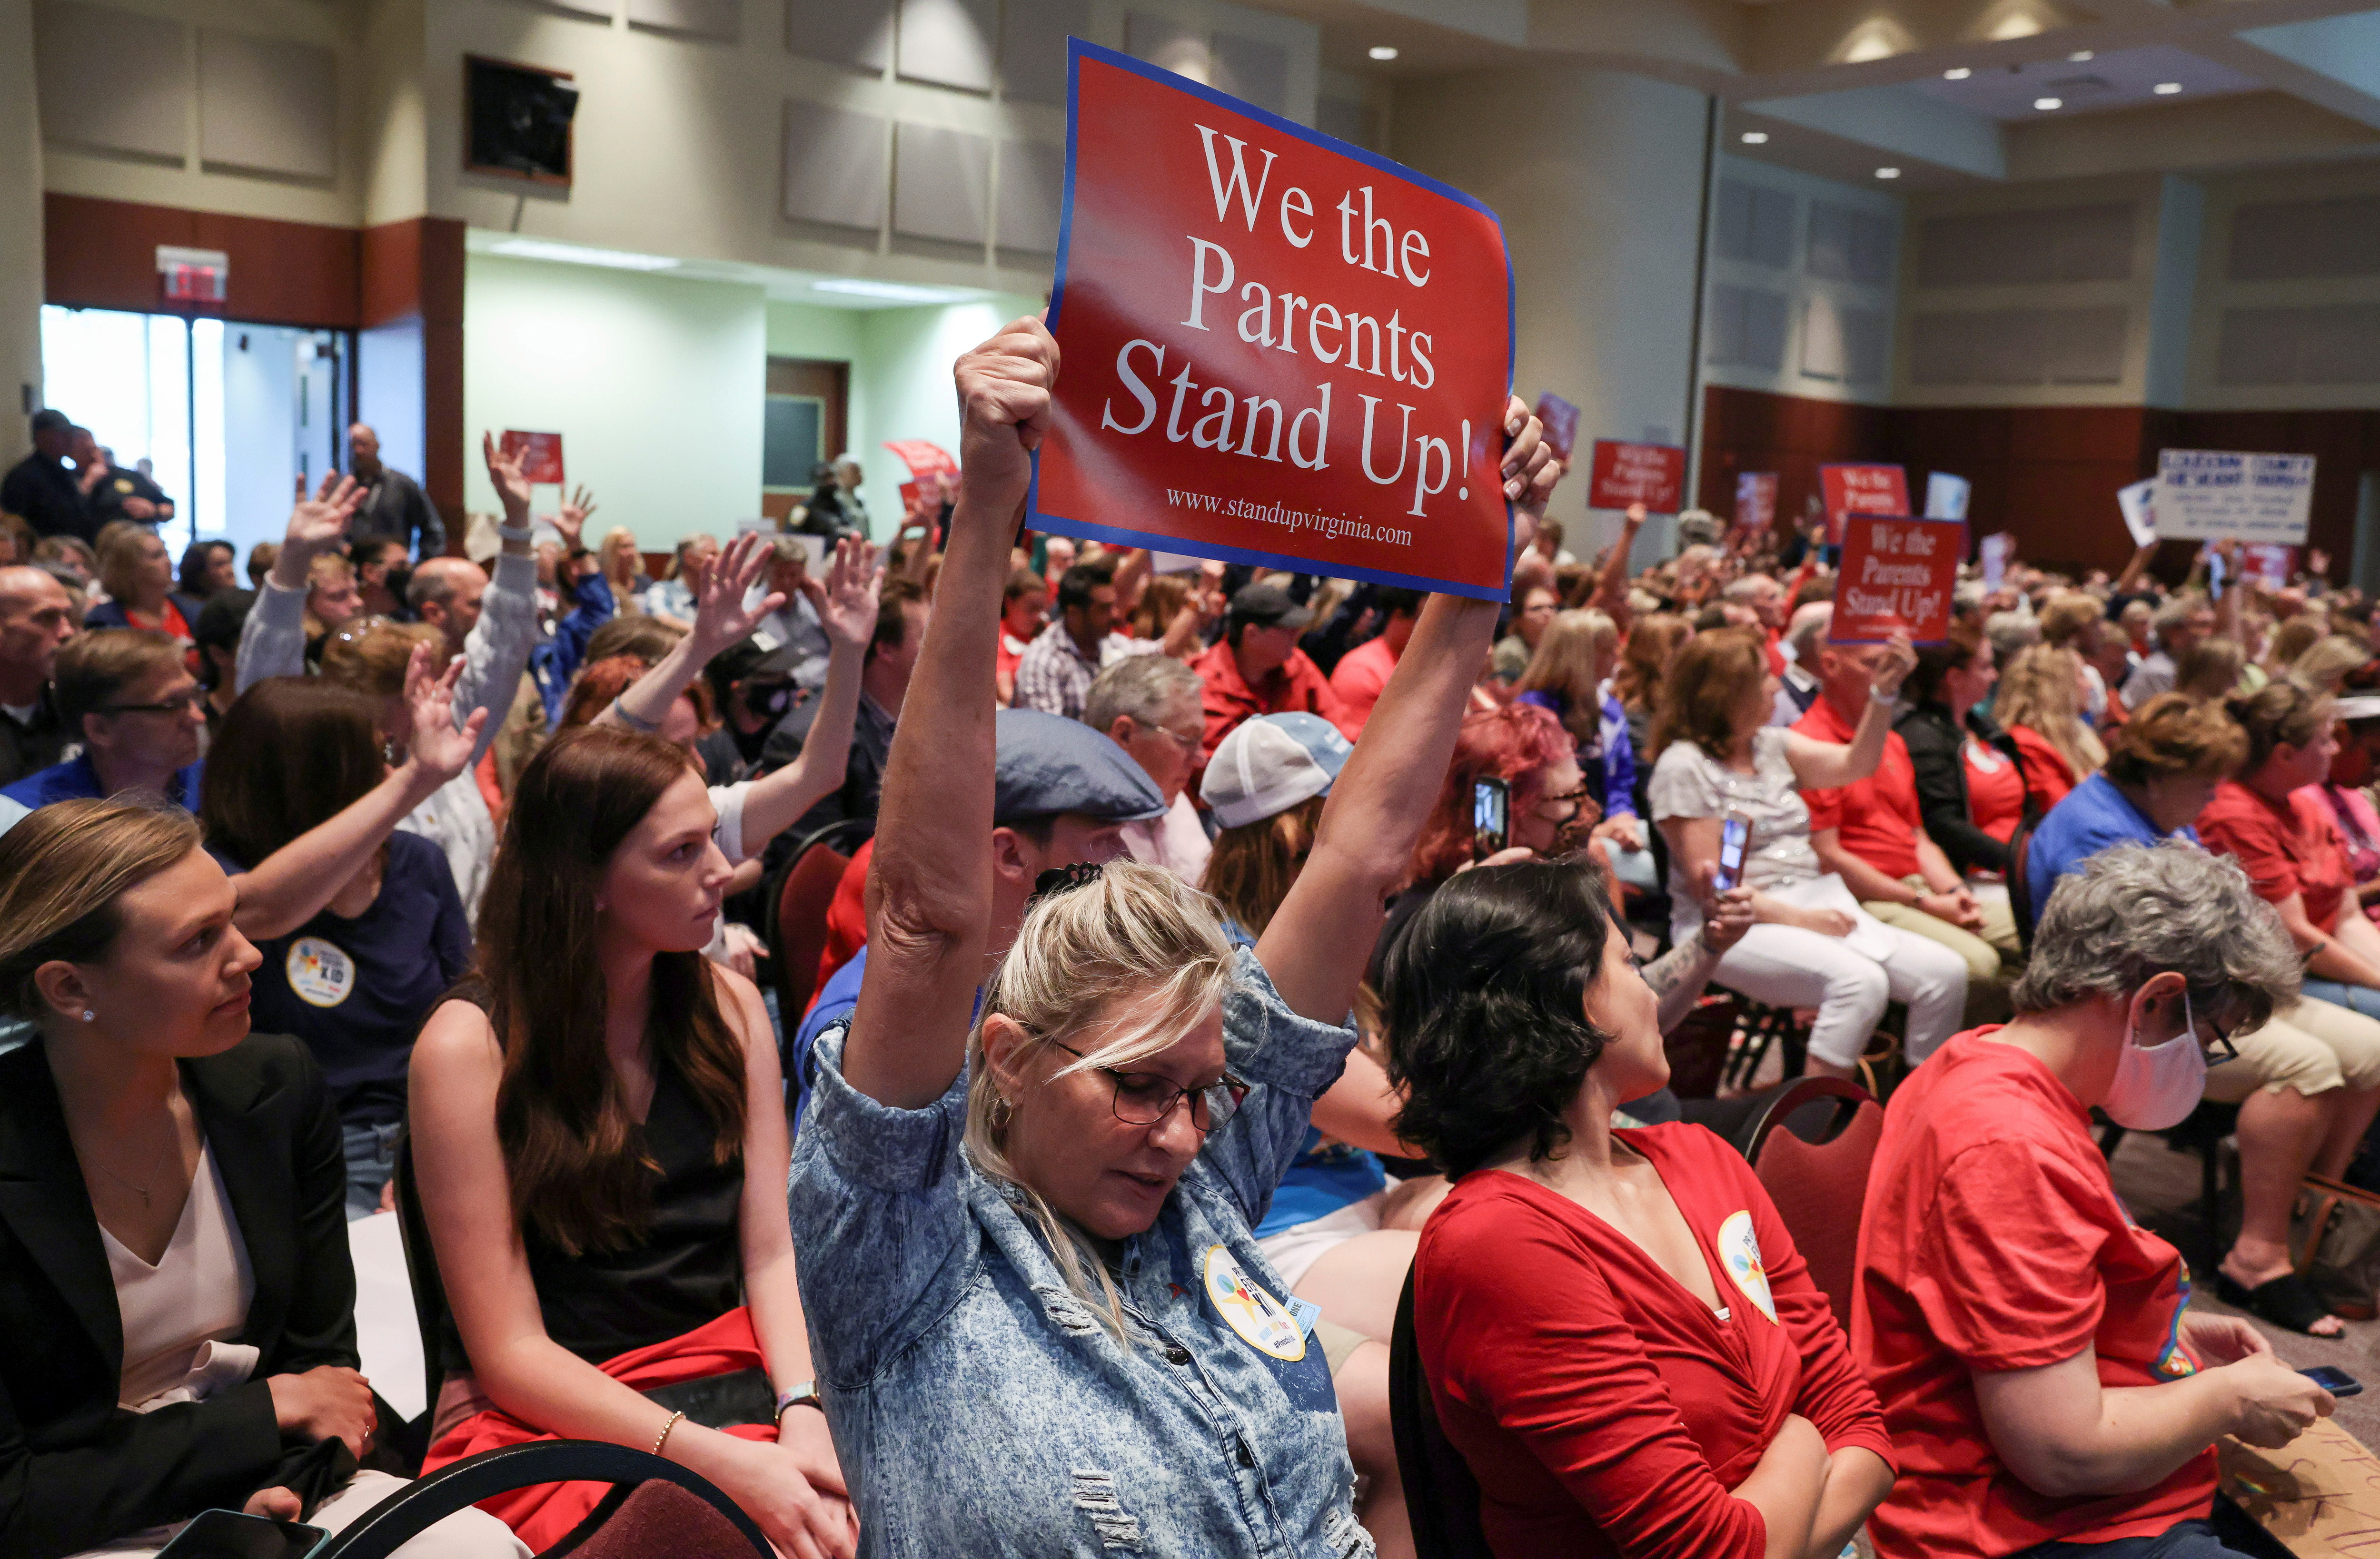 Parents and community members attend a Loudoun County School Board meeting which included a discussion about the academic doctrine known as Critical Race Theory, in Ashburn, Virginia, U.S.  June 22, 2021. REUTERS/Evelyn Hockstein/File Photo